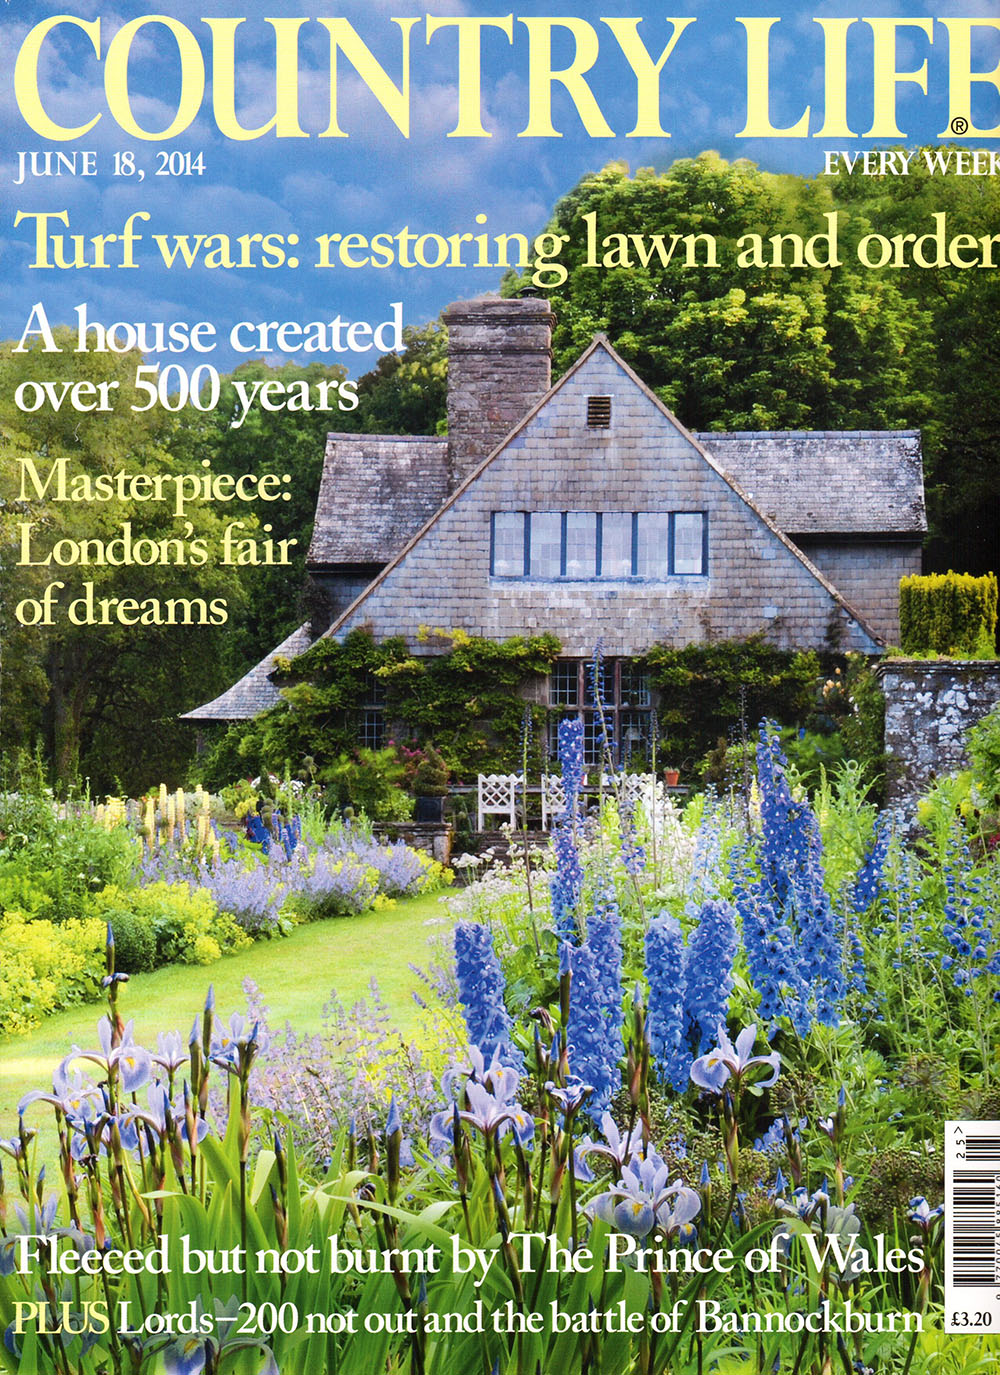 Country Life June 2014 cover.jpg